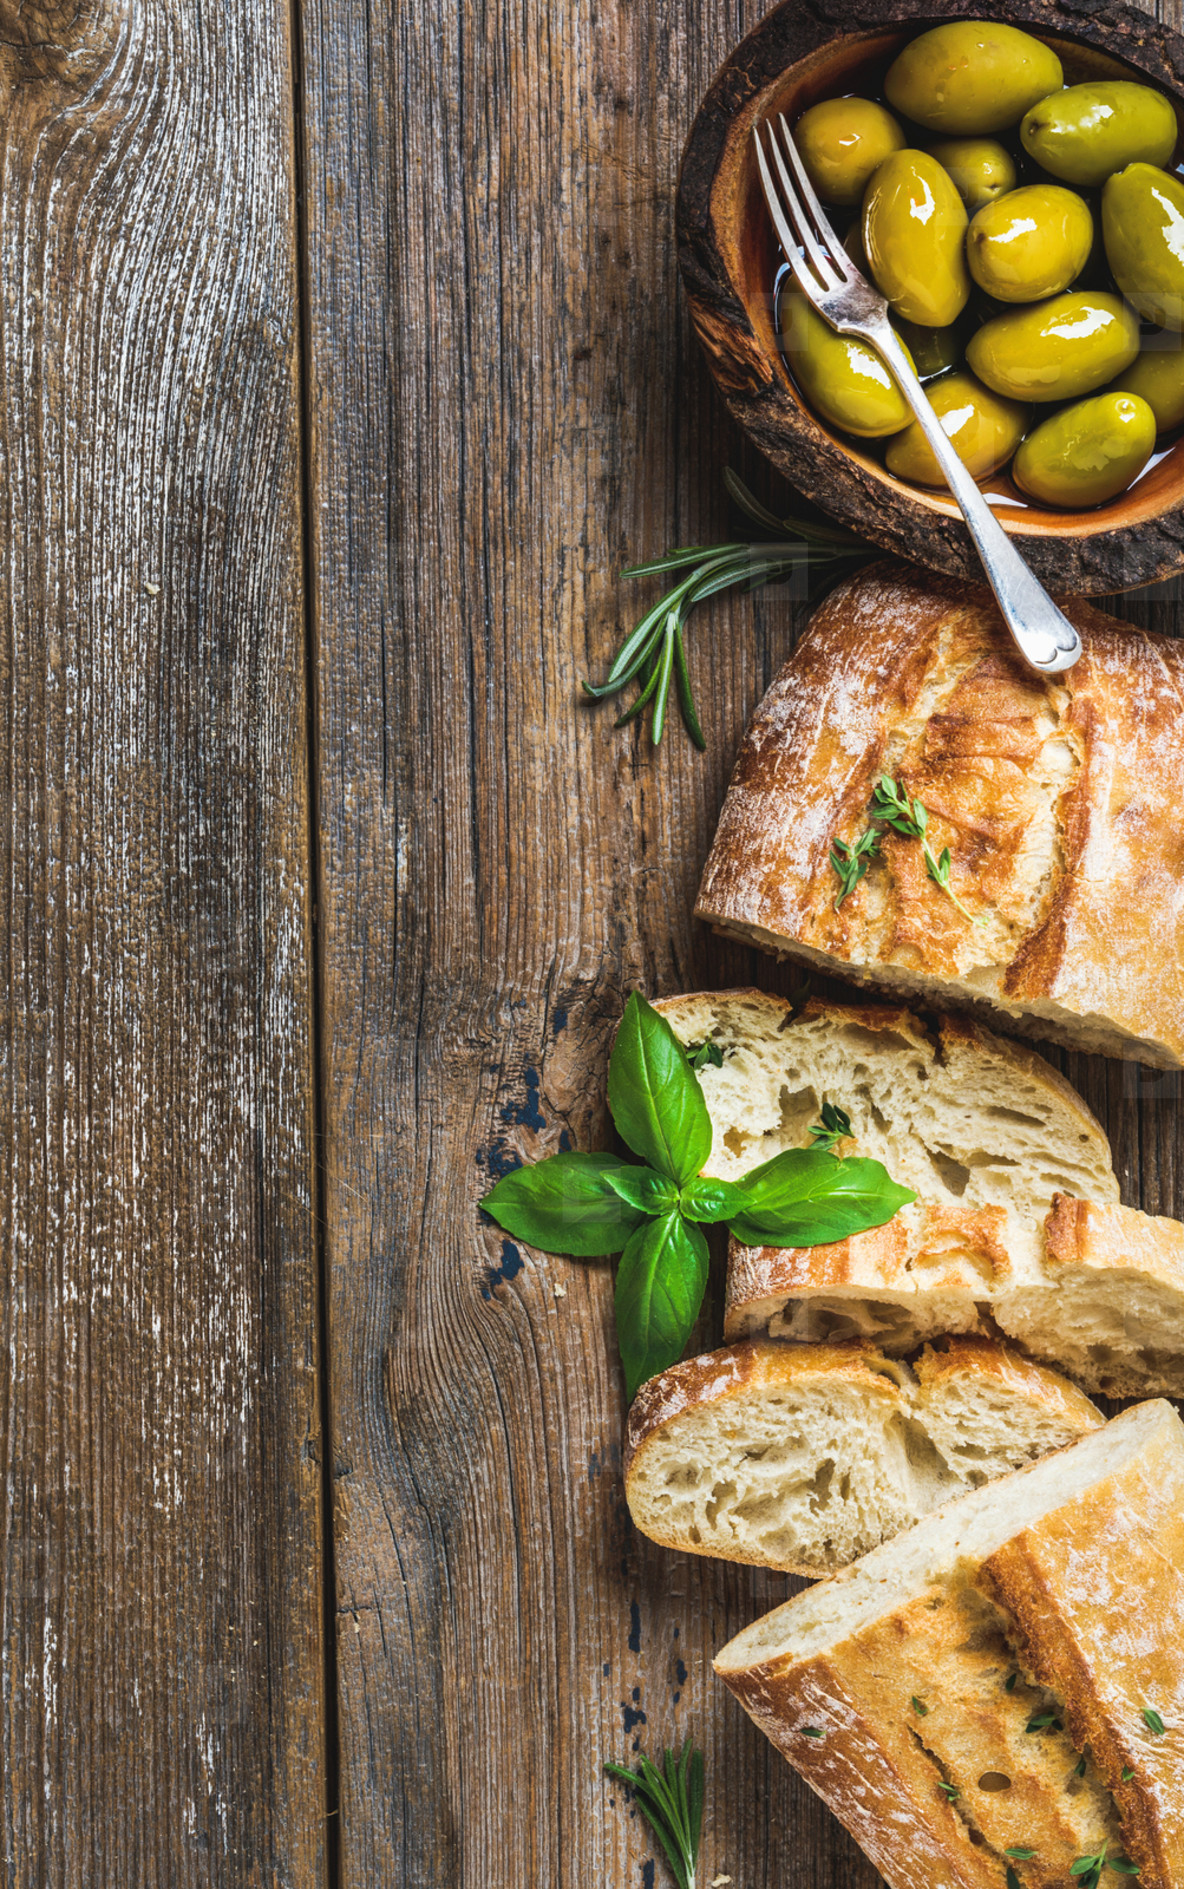 Green olives and slices of ciabatta over rustic wooden background